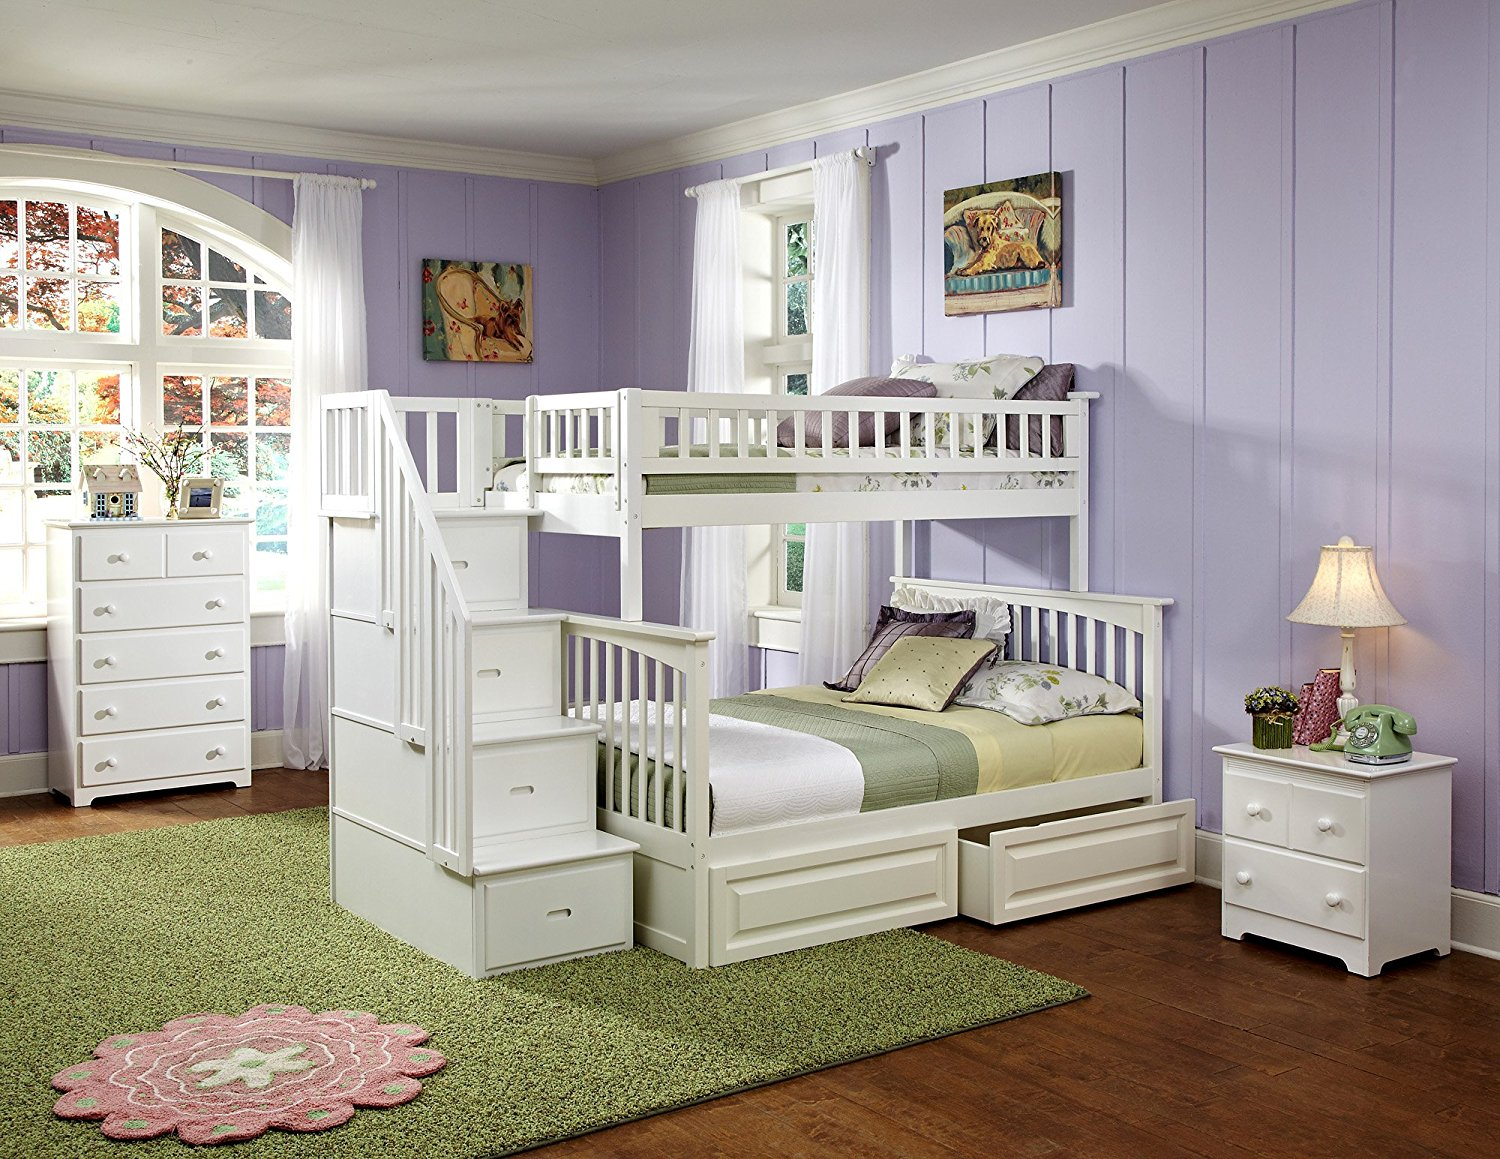 white bunk beds with stairs amazon.com: columbia staircase bunk bed with 2 raised panel bed drawers,  twin sanfuwi